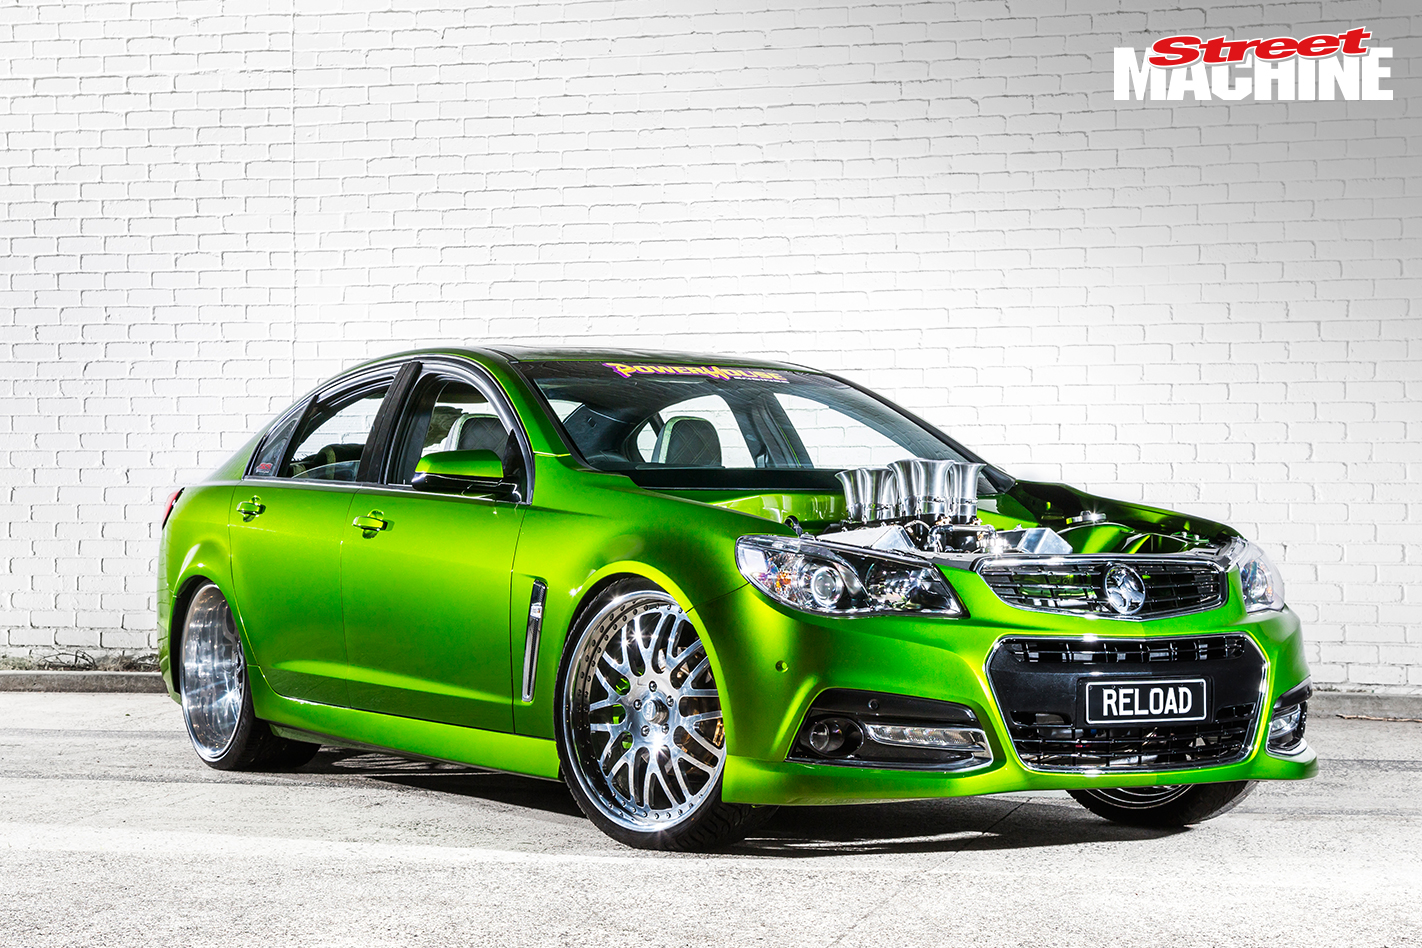 VF Commodore RELOAD 15 Nw